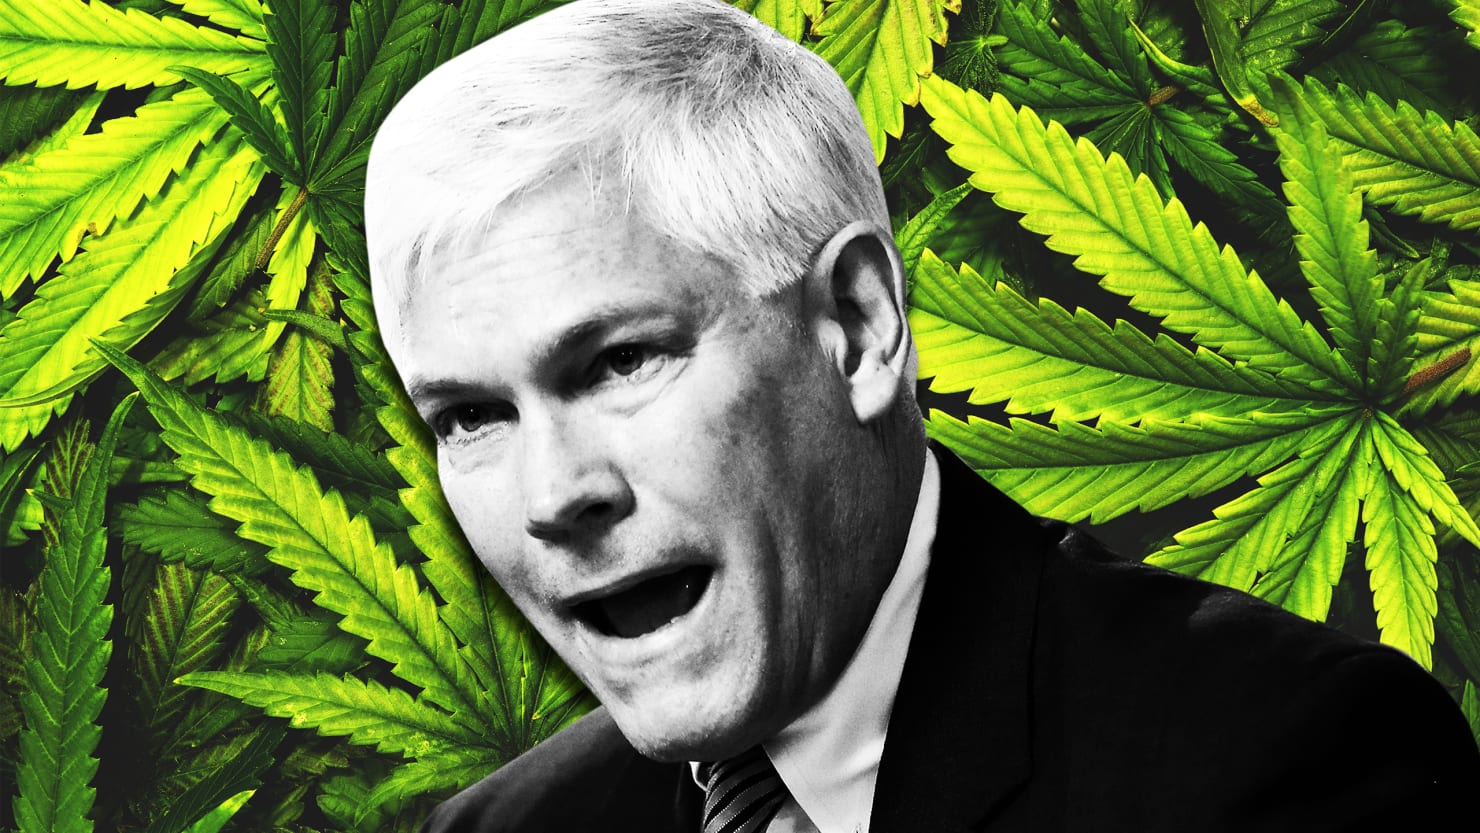 pete sessions colin allred medical marijuana november midterm election cannabis pot zartler mark christy cara autism autistic dcfs child protective services self injury